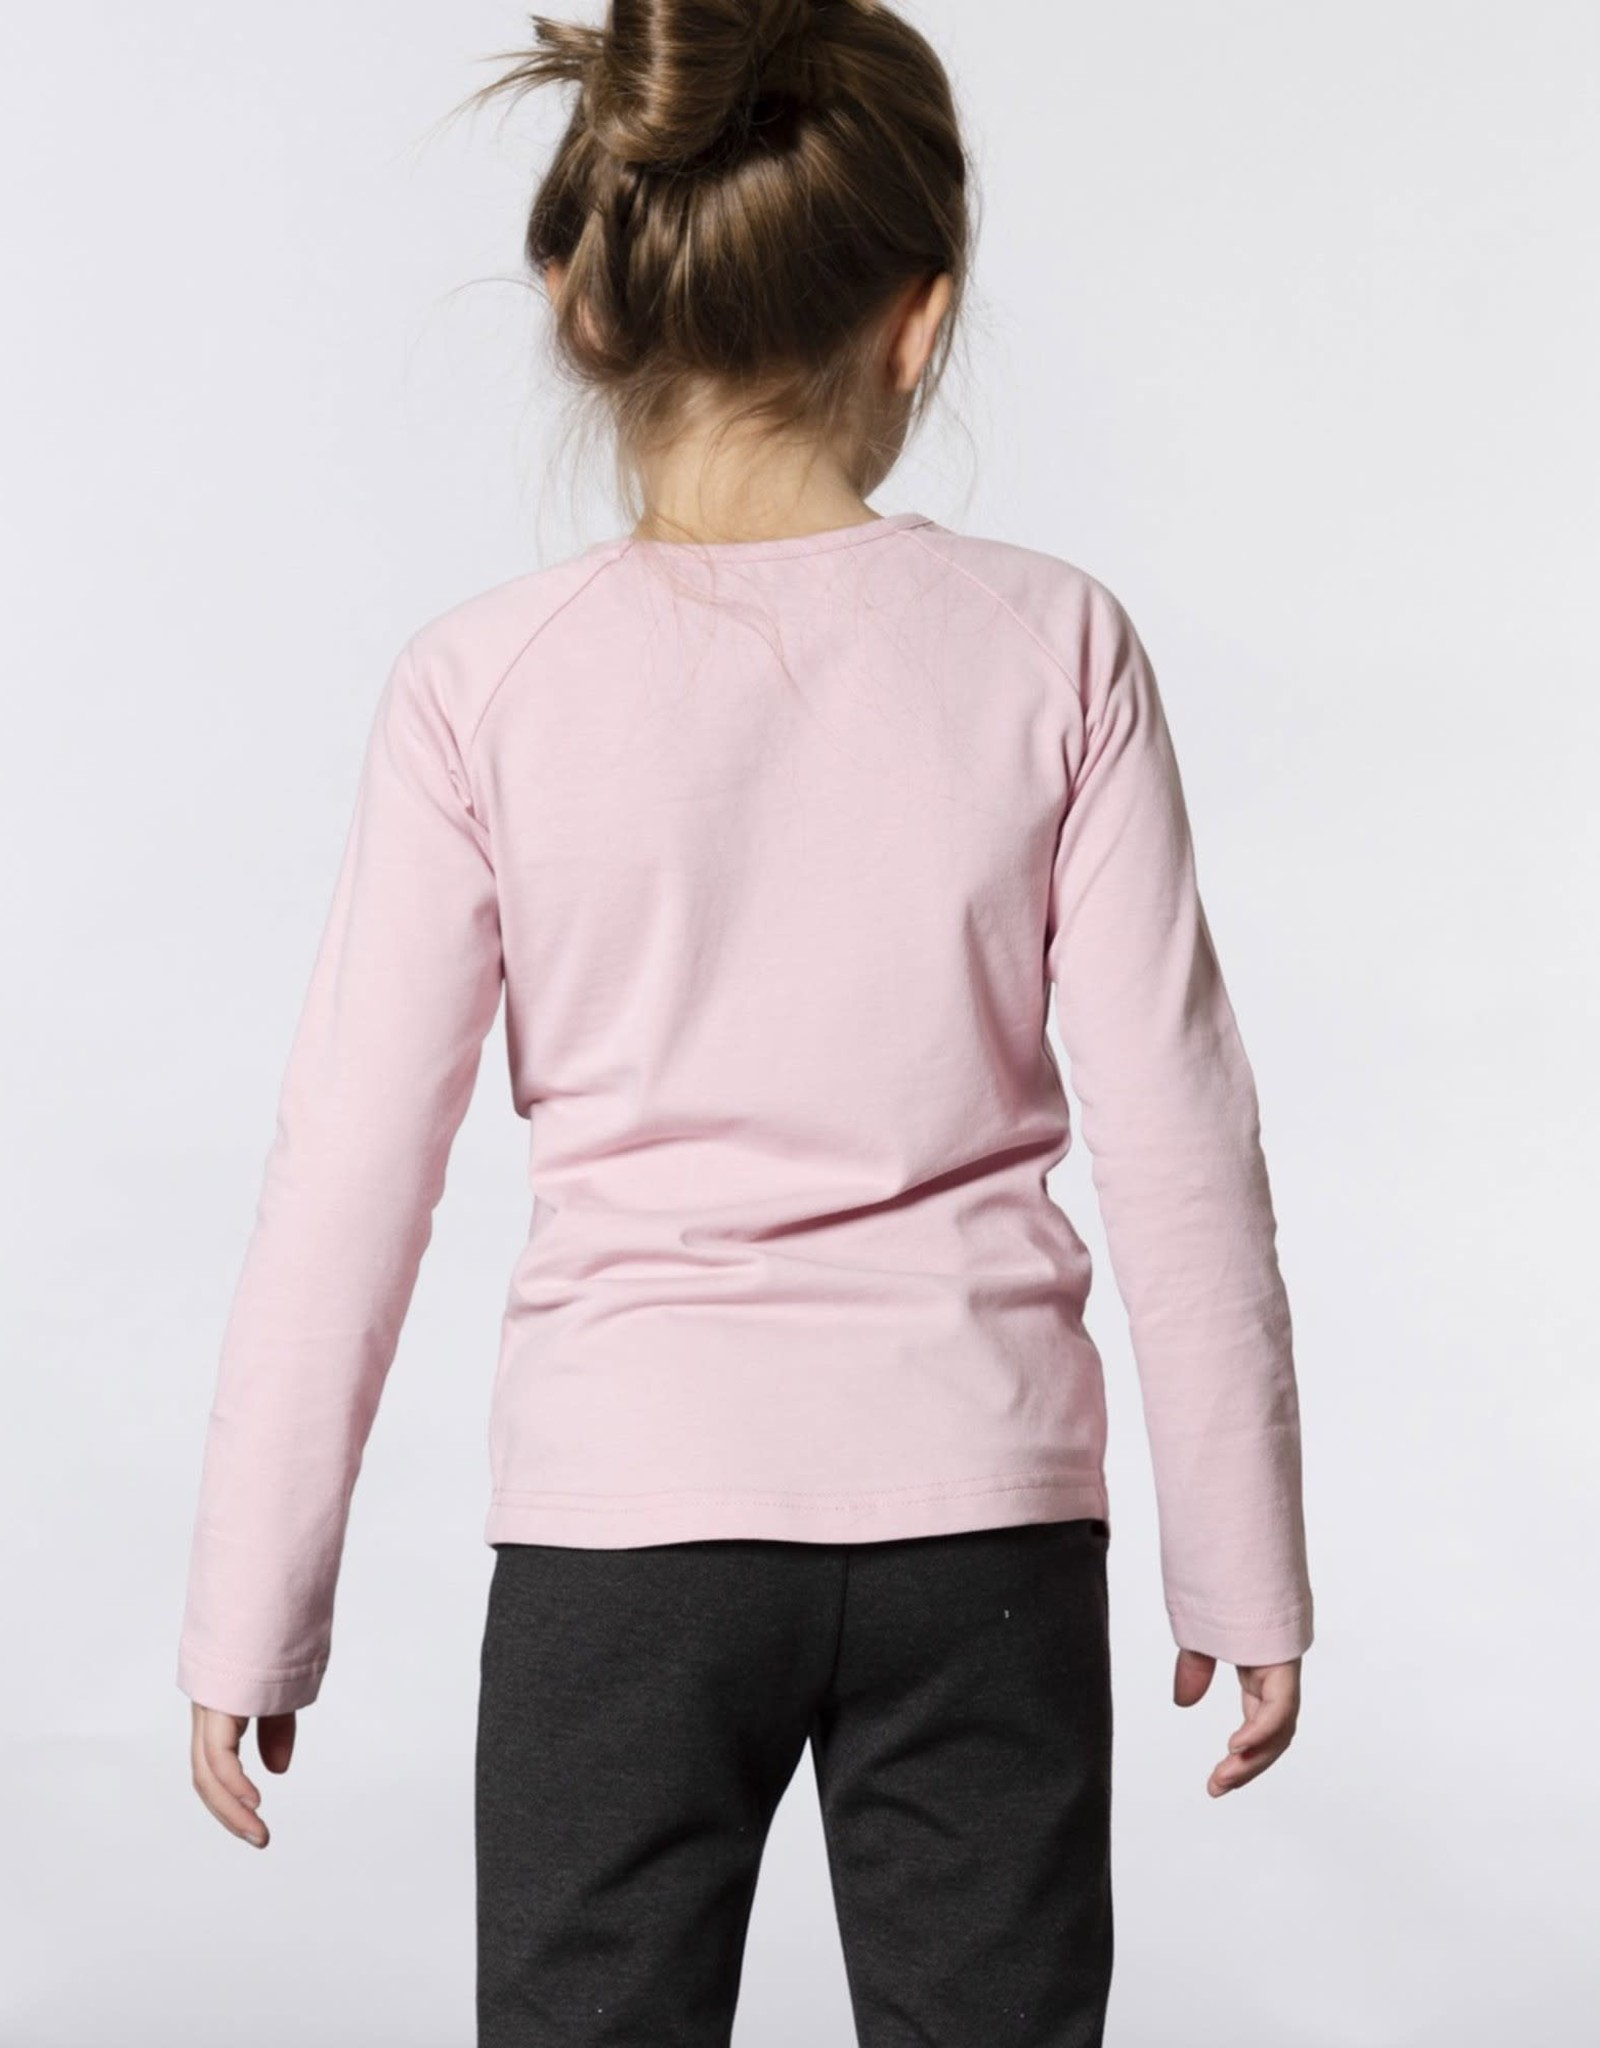 Deux Par Deux Deux Par Deux Pink Long Sleeve T-Shirt with Faux Fur Pockets Size 3